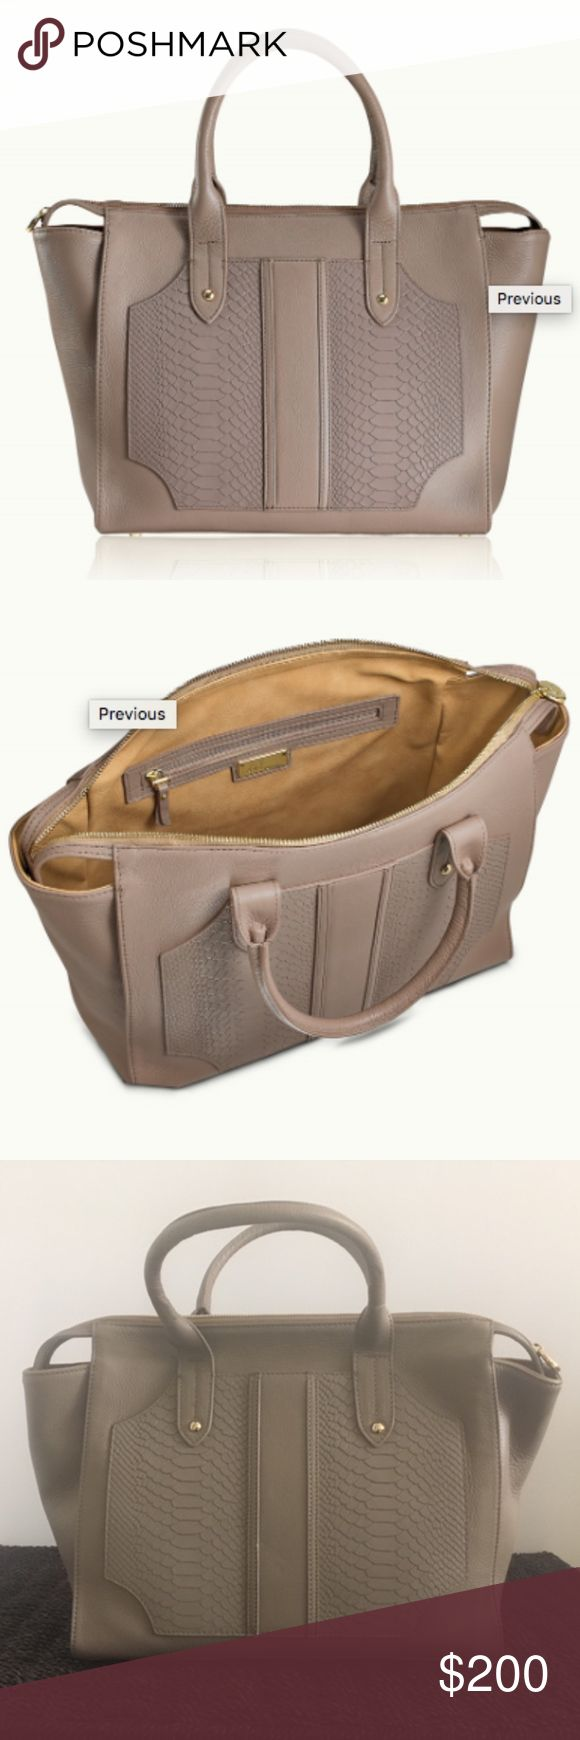 """NEW GiGi New York Gates Satchel in Stone - Originally priced at $475 - Never used - Includes dust bag - Color - Stone - Natural Grain/Embossed Python Leather  - Large interior zipped pocket and two interior slip pockets  - Protective metal feet  - Double top handles with 5 1/2 """" drop  - Size: 13 """" W x 11 """" H x 5 """" D - From a non-smoking, pet free home - NOTE: There are a few subtle small indentations on the bag, which I have tried to show in the close up picture; these must have been on the…"""